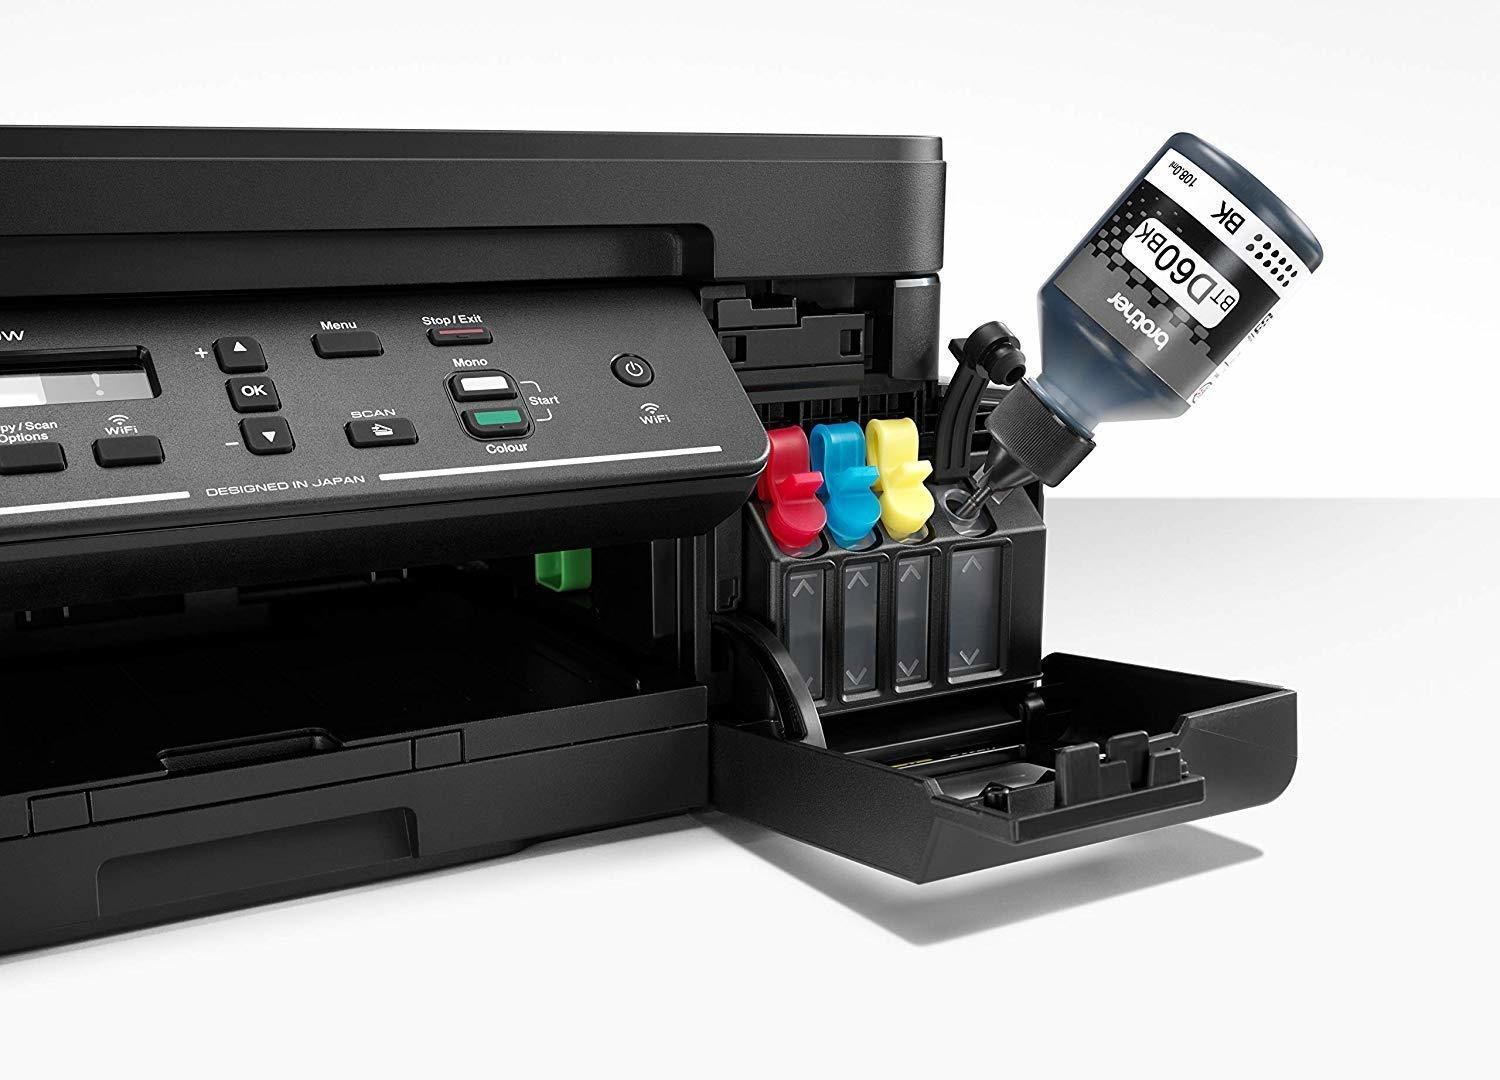 Brother DCP T710W - T710 Refill Tank System Printer Wifi, Mobile-Print, ADF  Print, Scan and Copy with Built-in Wireless Borderless Printing -